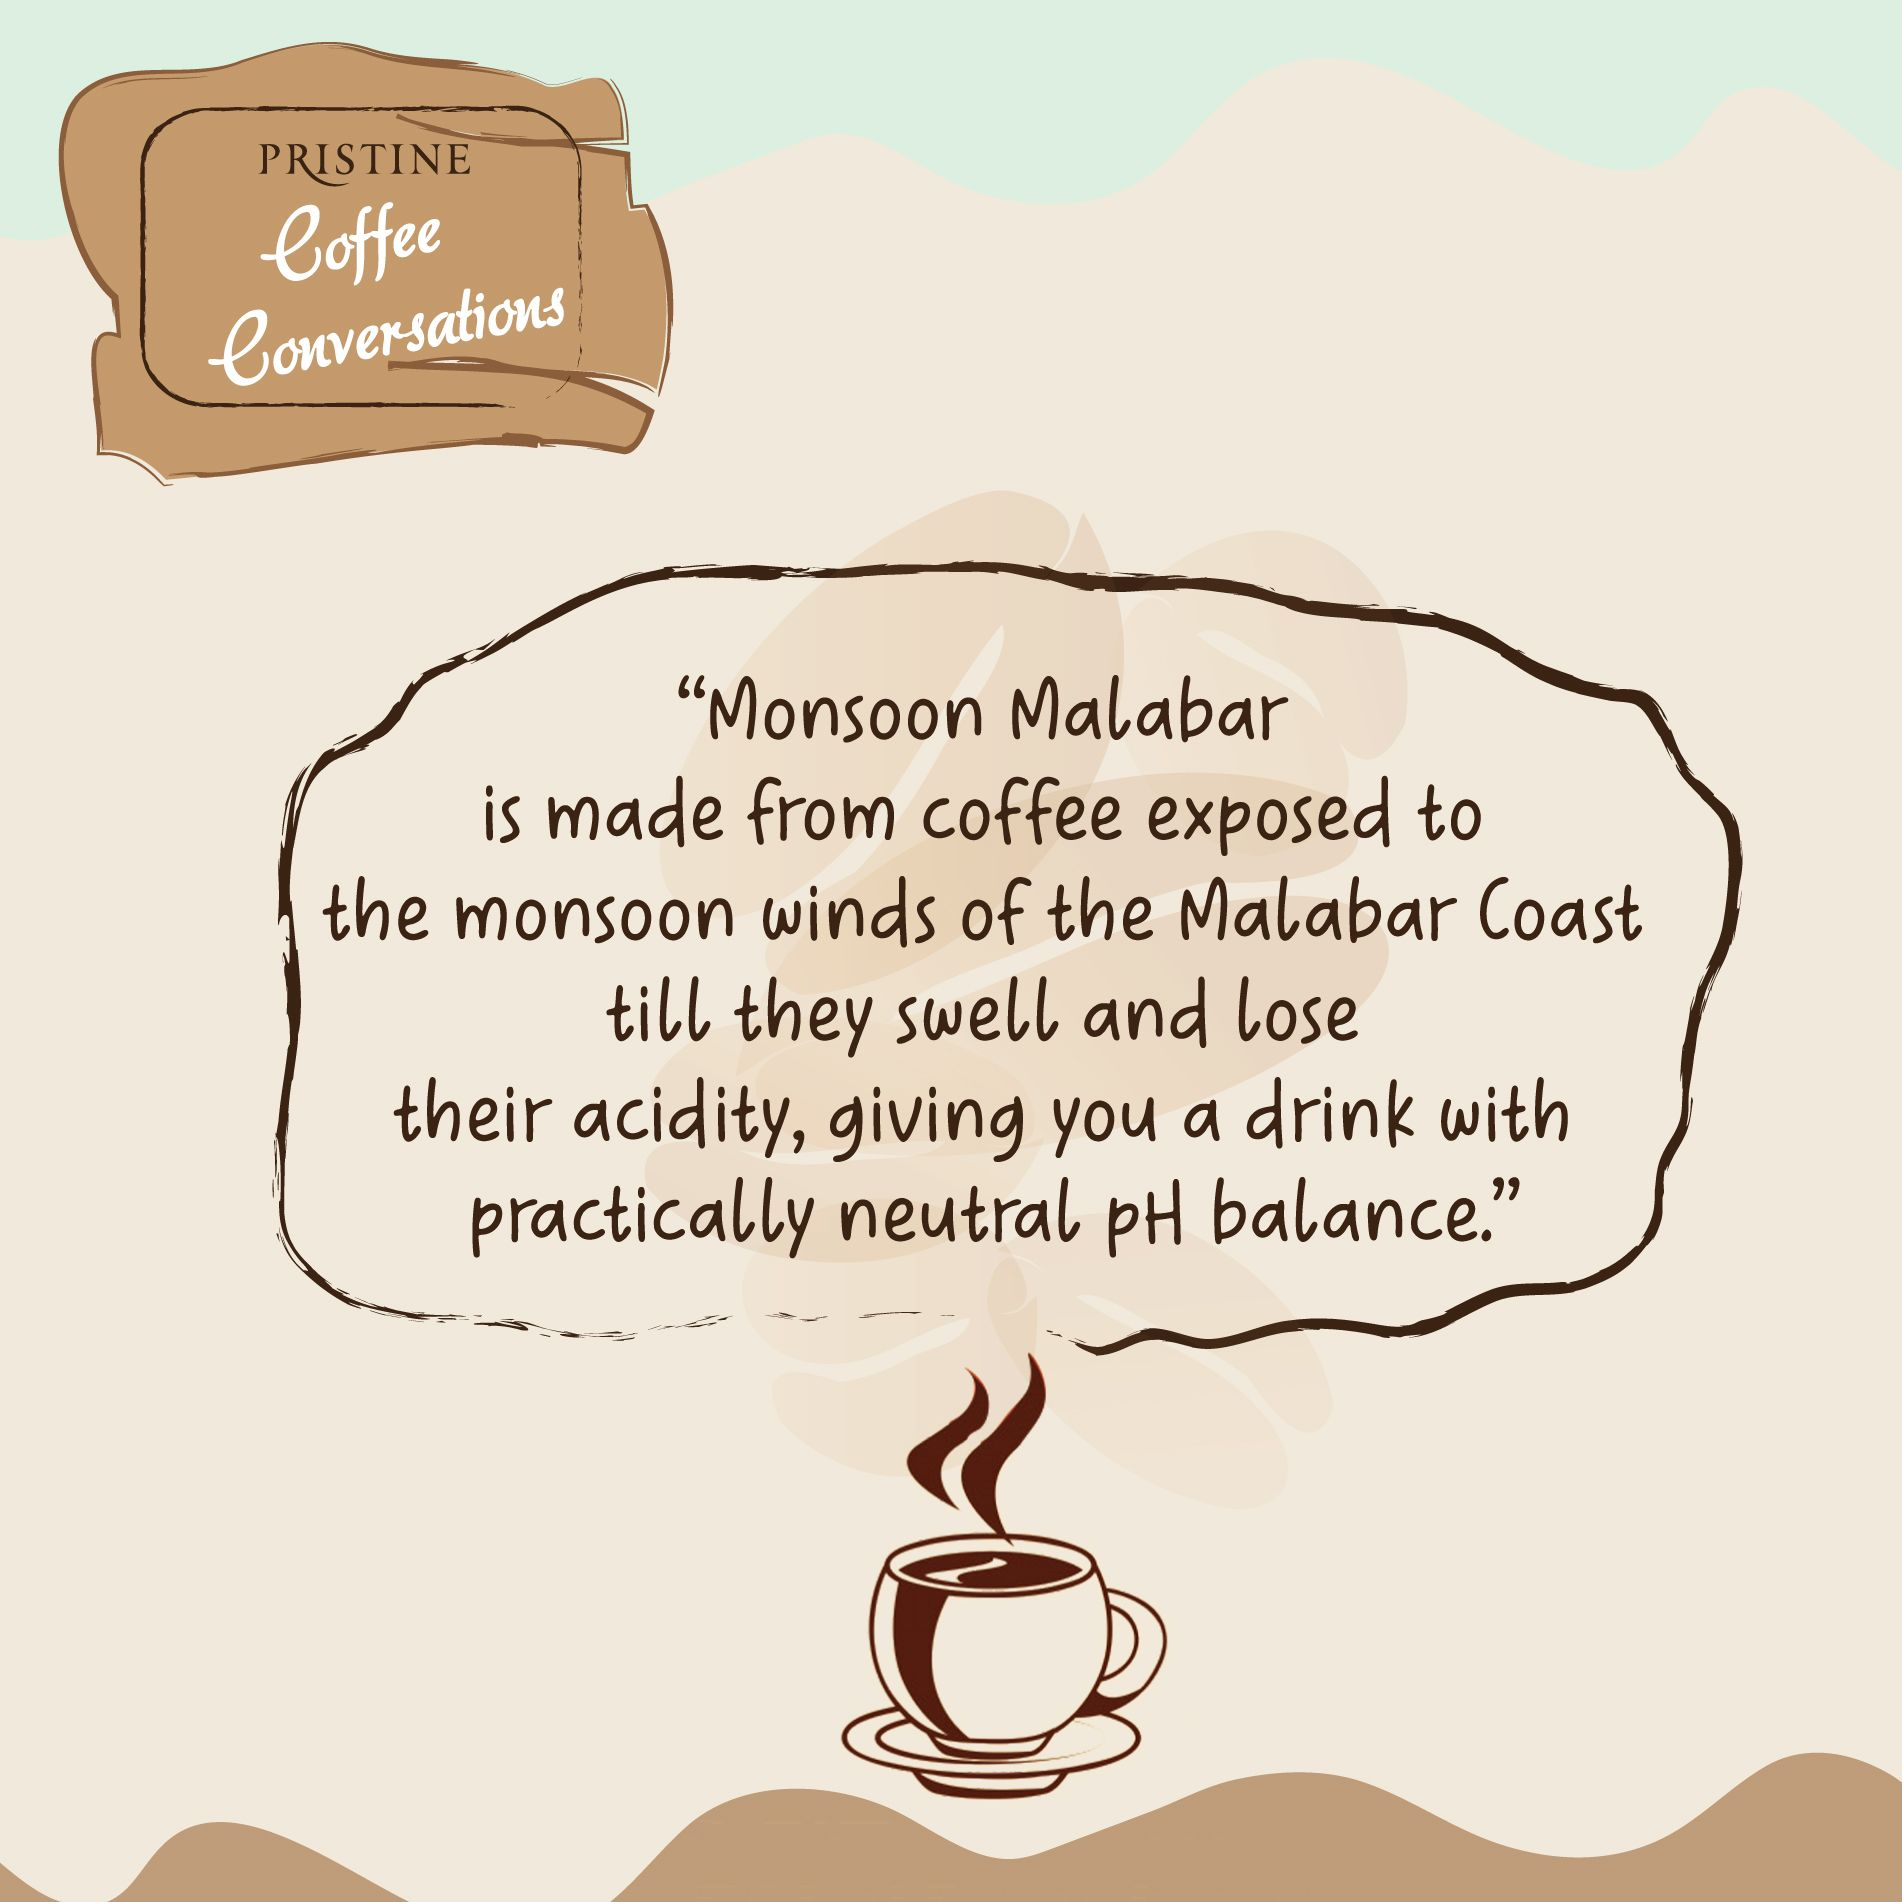 Monsoon Malabar is made from coffee exposed to the monsoon